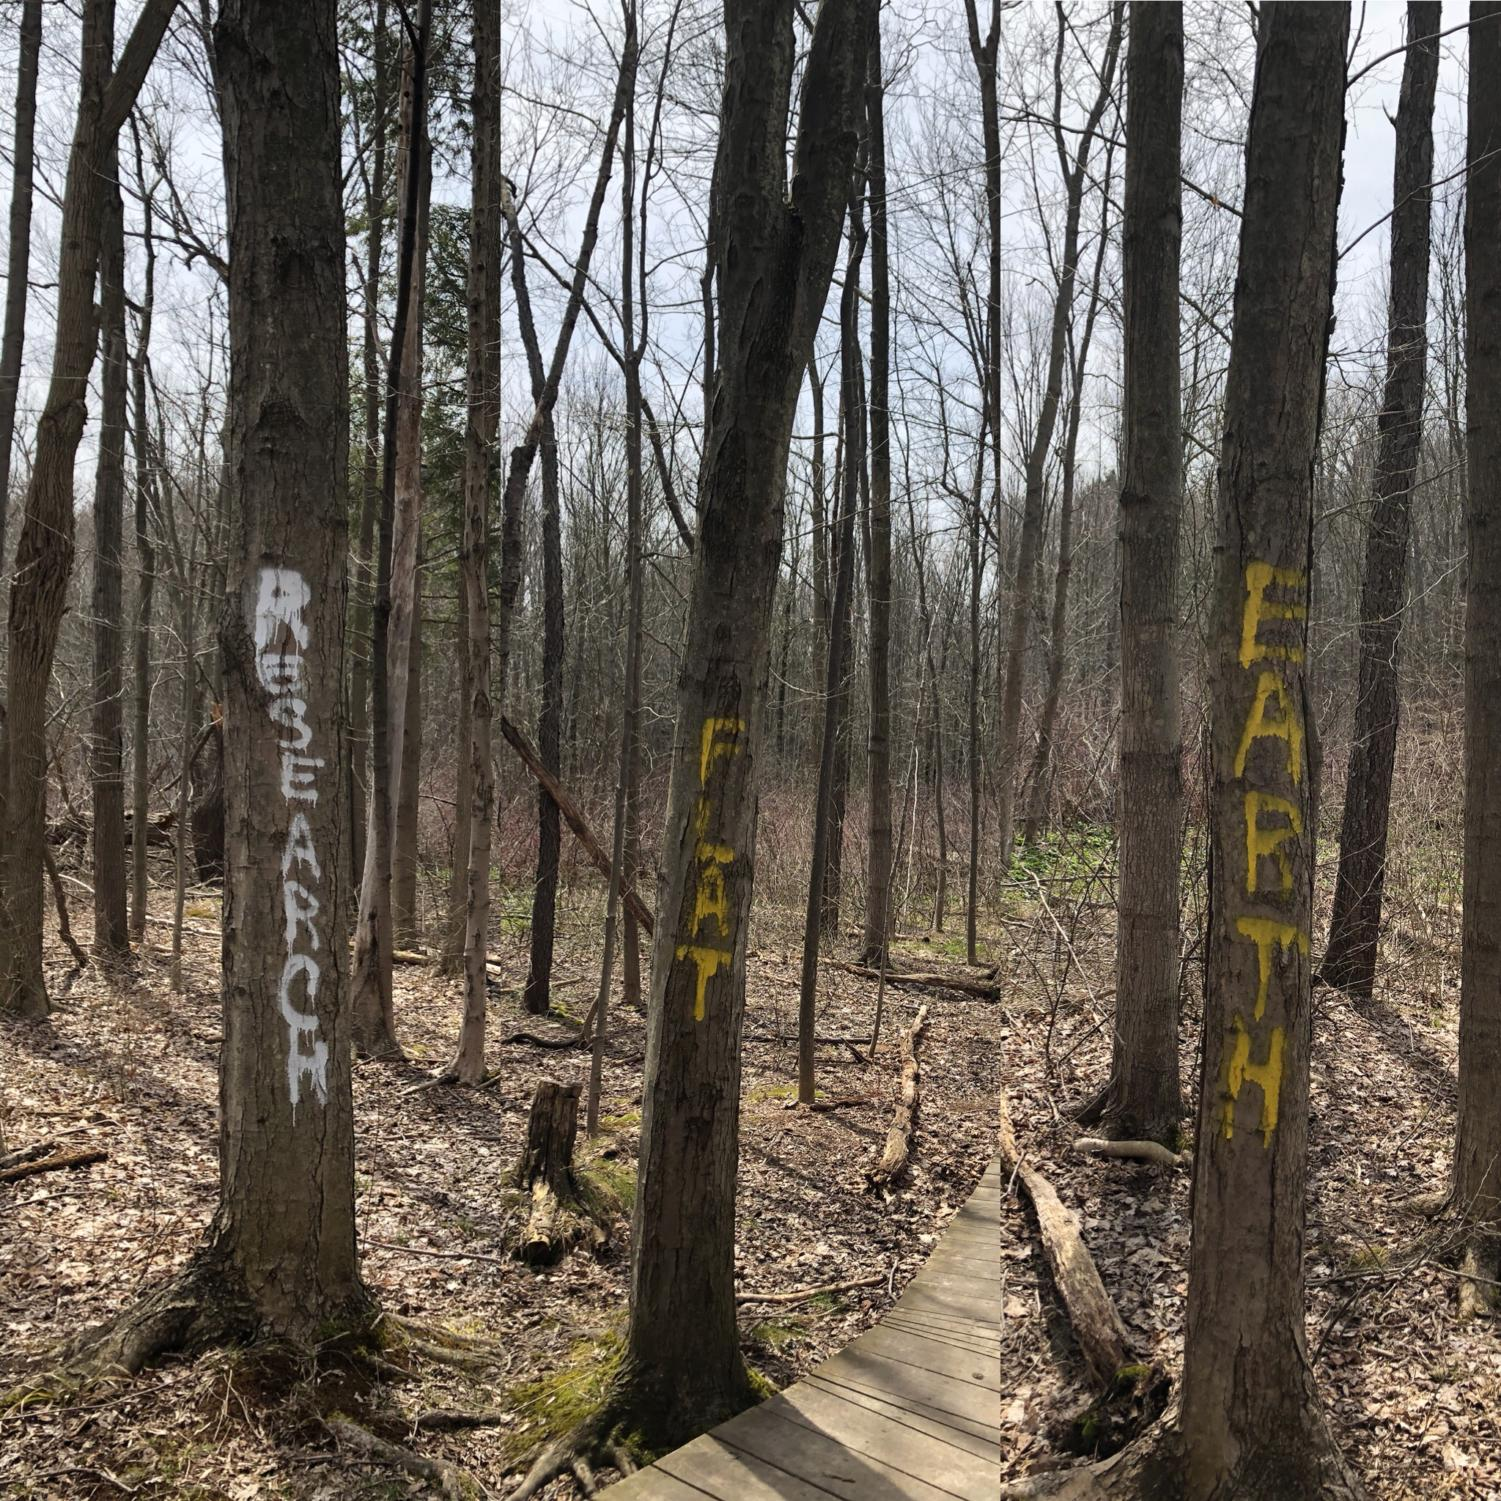 Vandals spray painted trees in Asbury Woods Park to spread the flat earth theory.